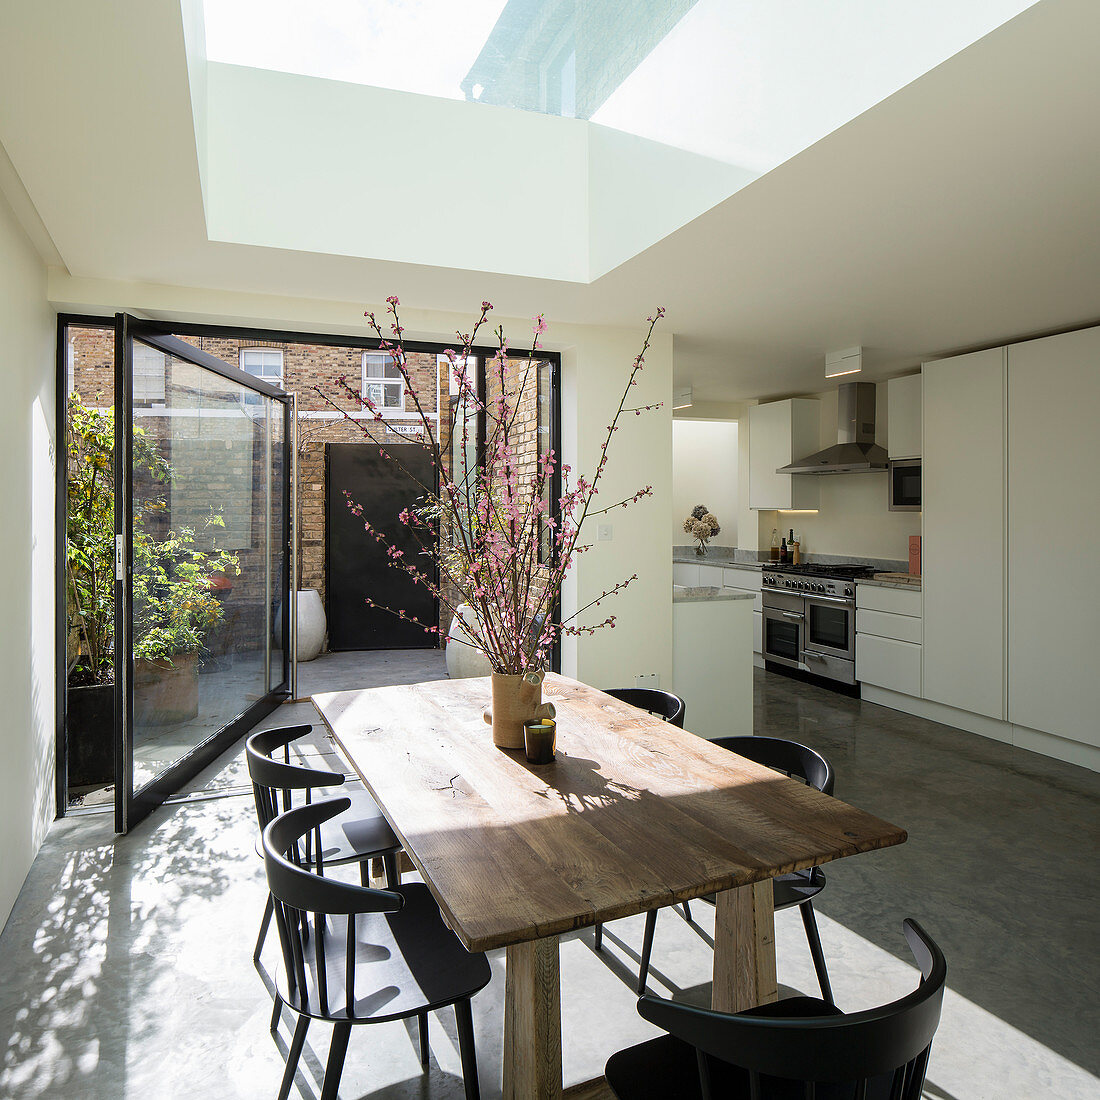 Dining table below skylight and open … – Buy image – 12444285 ❘ living4media